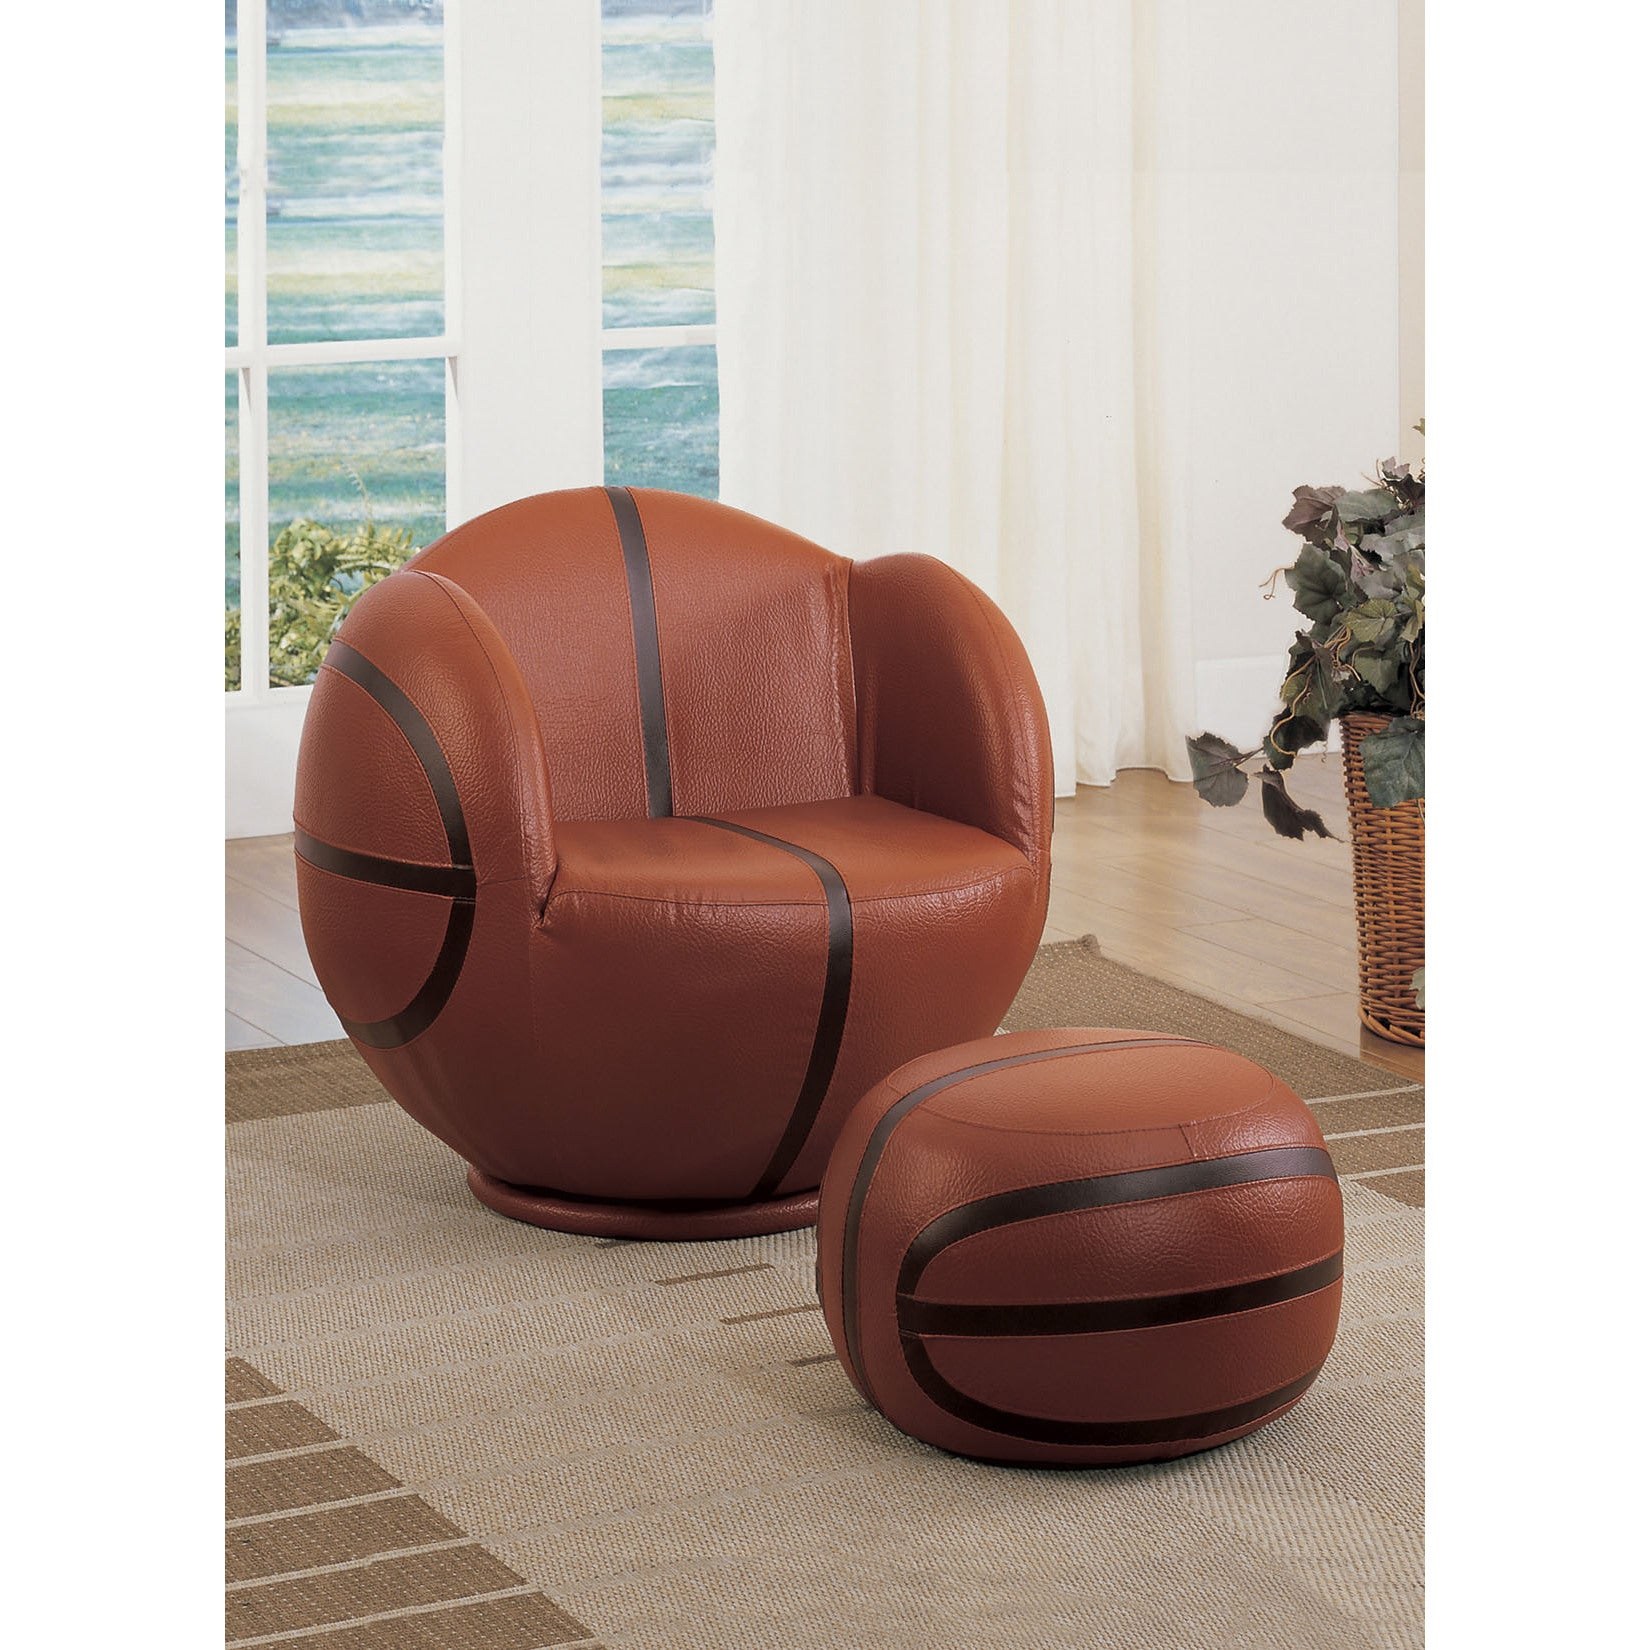 Peachy All Star 2 Piece Basketball Youth Chair And Ottoman Unemploymentrelief Wooden Chair Designs For Living Room Unemploymentrelieforg